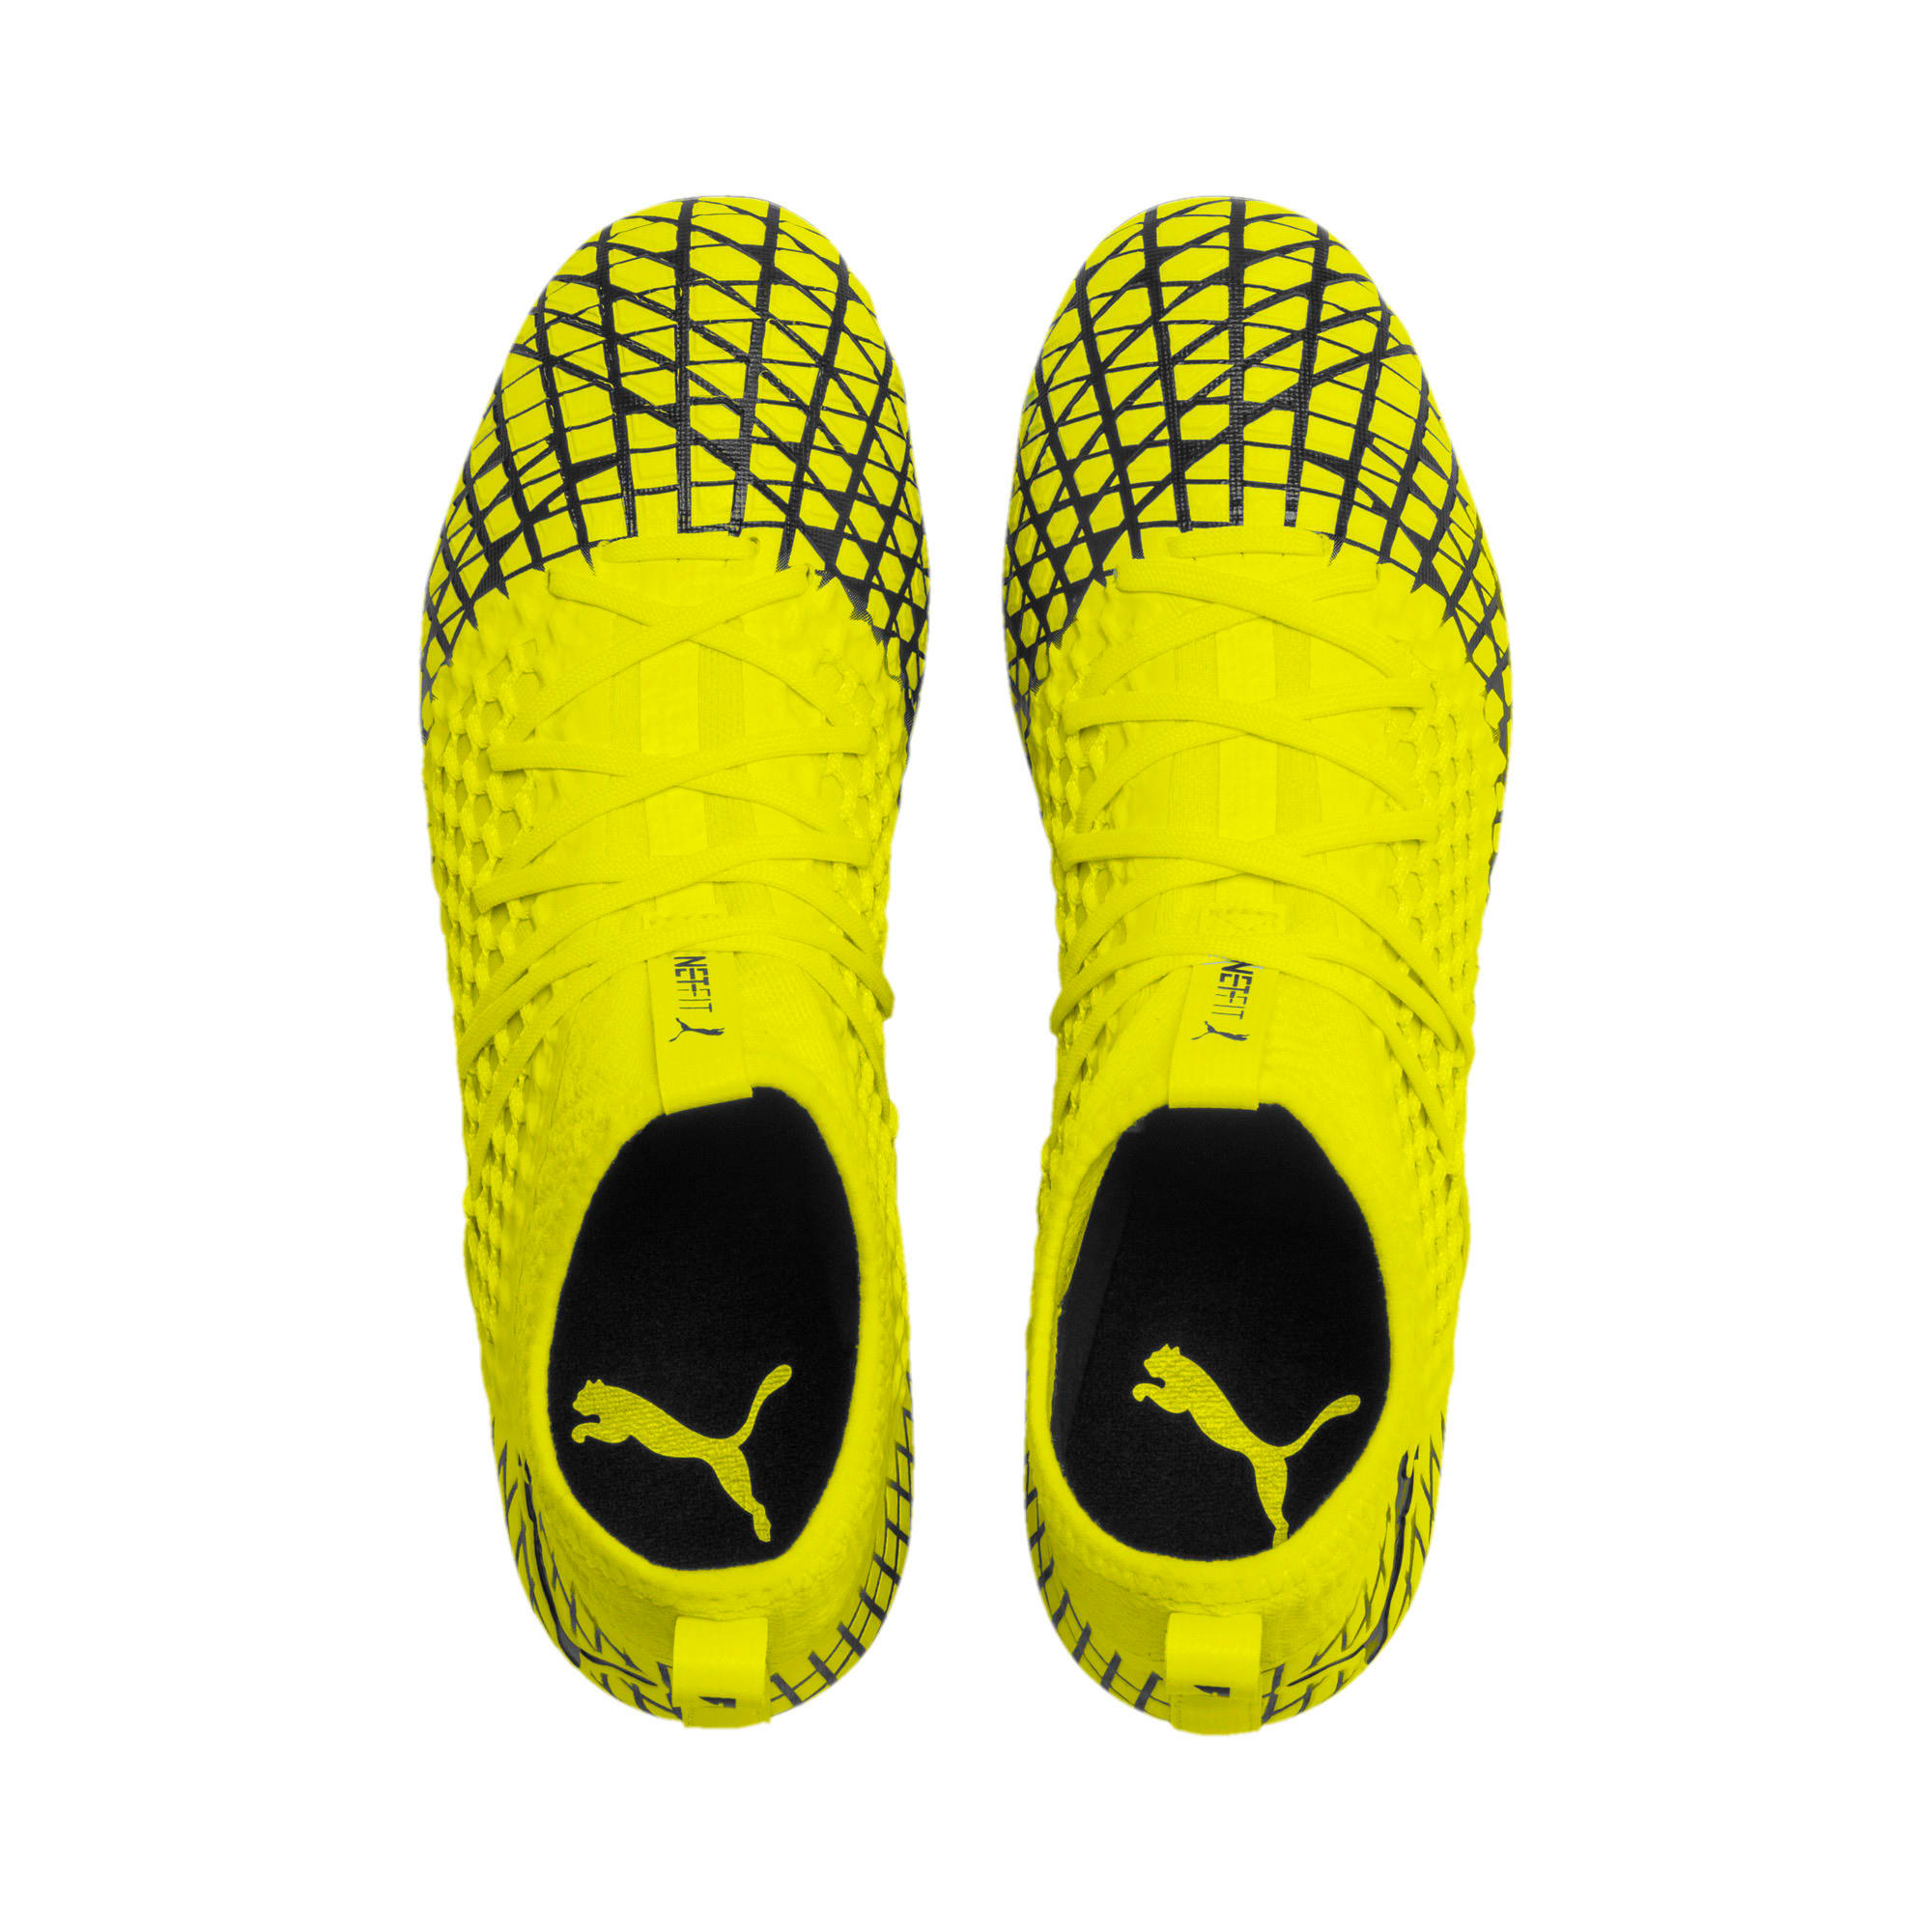 Thumbnail 7 of FUTURE 4.3 NETFIT FG/AG voetbalschoenen voor heren, Yellow Alert-Puma Black, medium